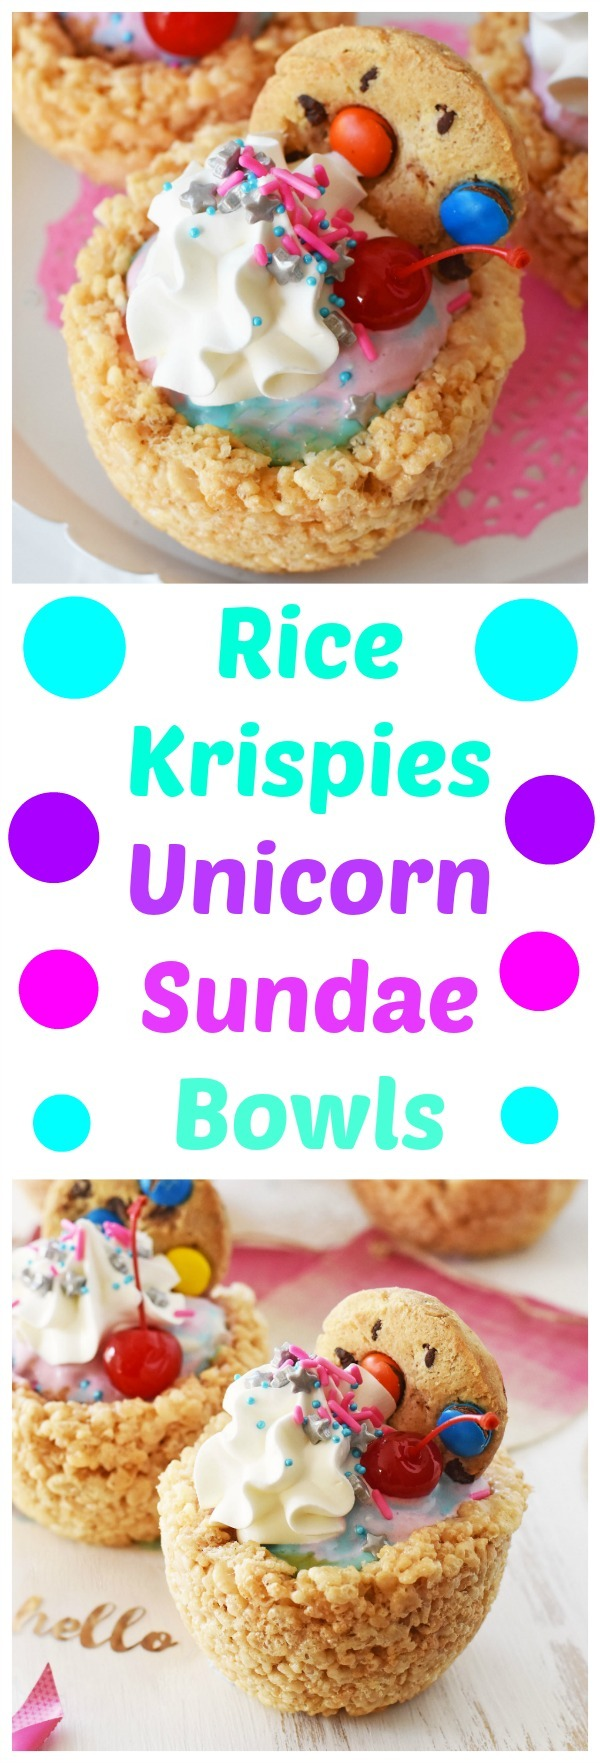 Rice Krispies Unicorn Sundae Bowls